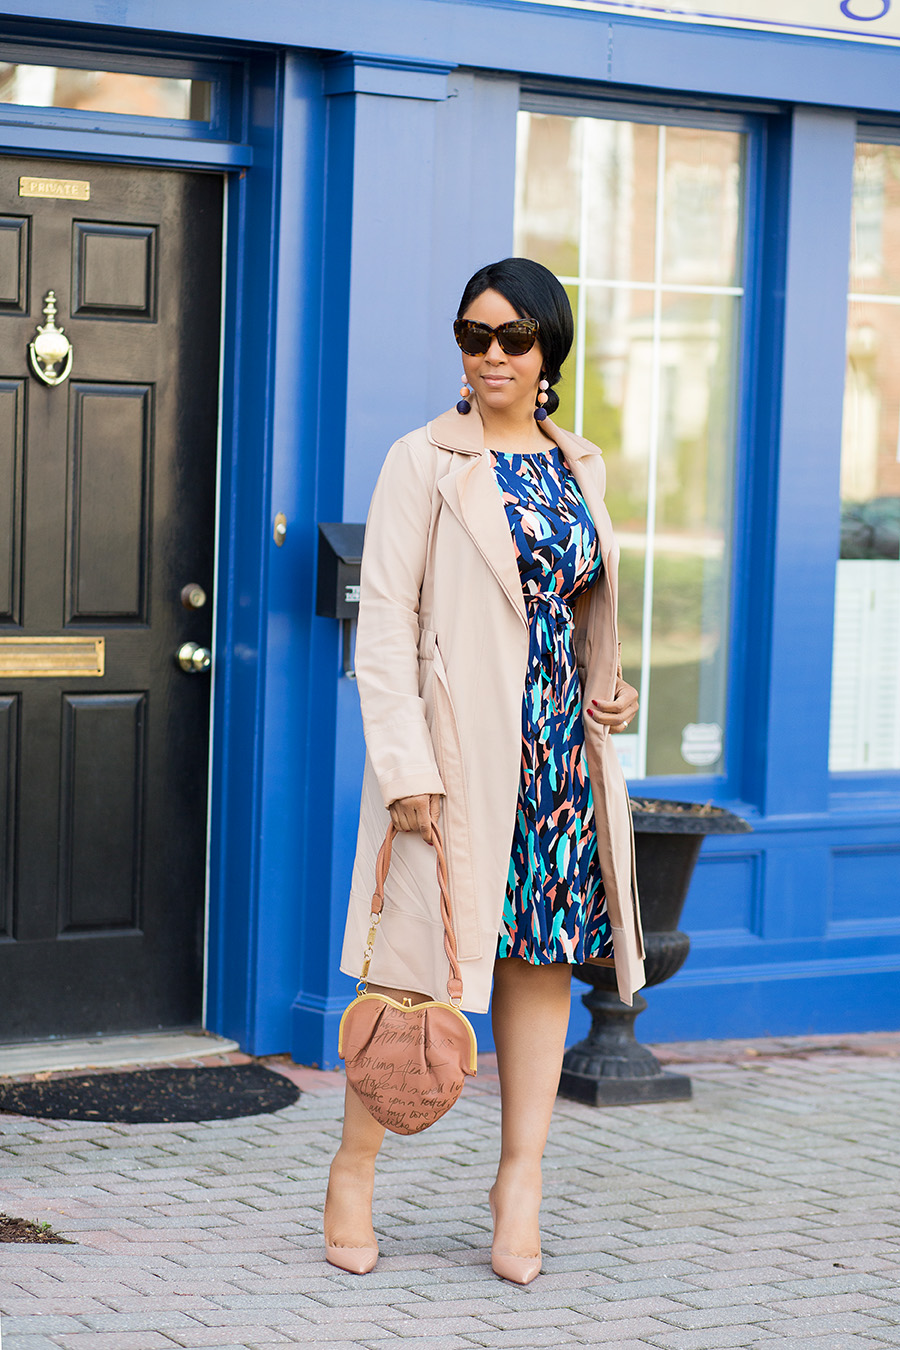 Women Who Work - What I'm Wearing: House of Harlow 1960 Chelsea Sunglasses - Tortoise, Leota Ilana dress in 'Mambo', Rachel Roy Reversible Trench Coat Dress, Christian Louboutin Pigalle Pumps, John Galliano Tan Leather Heart Shoulder Bag, BaubleBar Crispin Drop Earrings in Multi